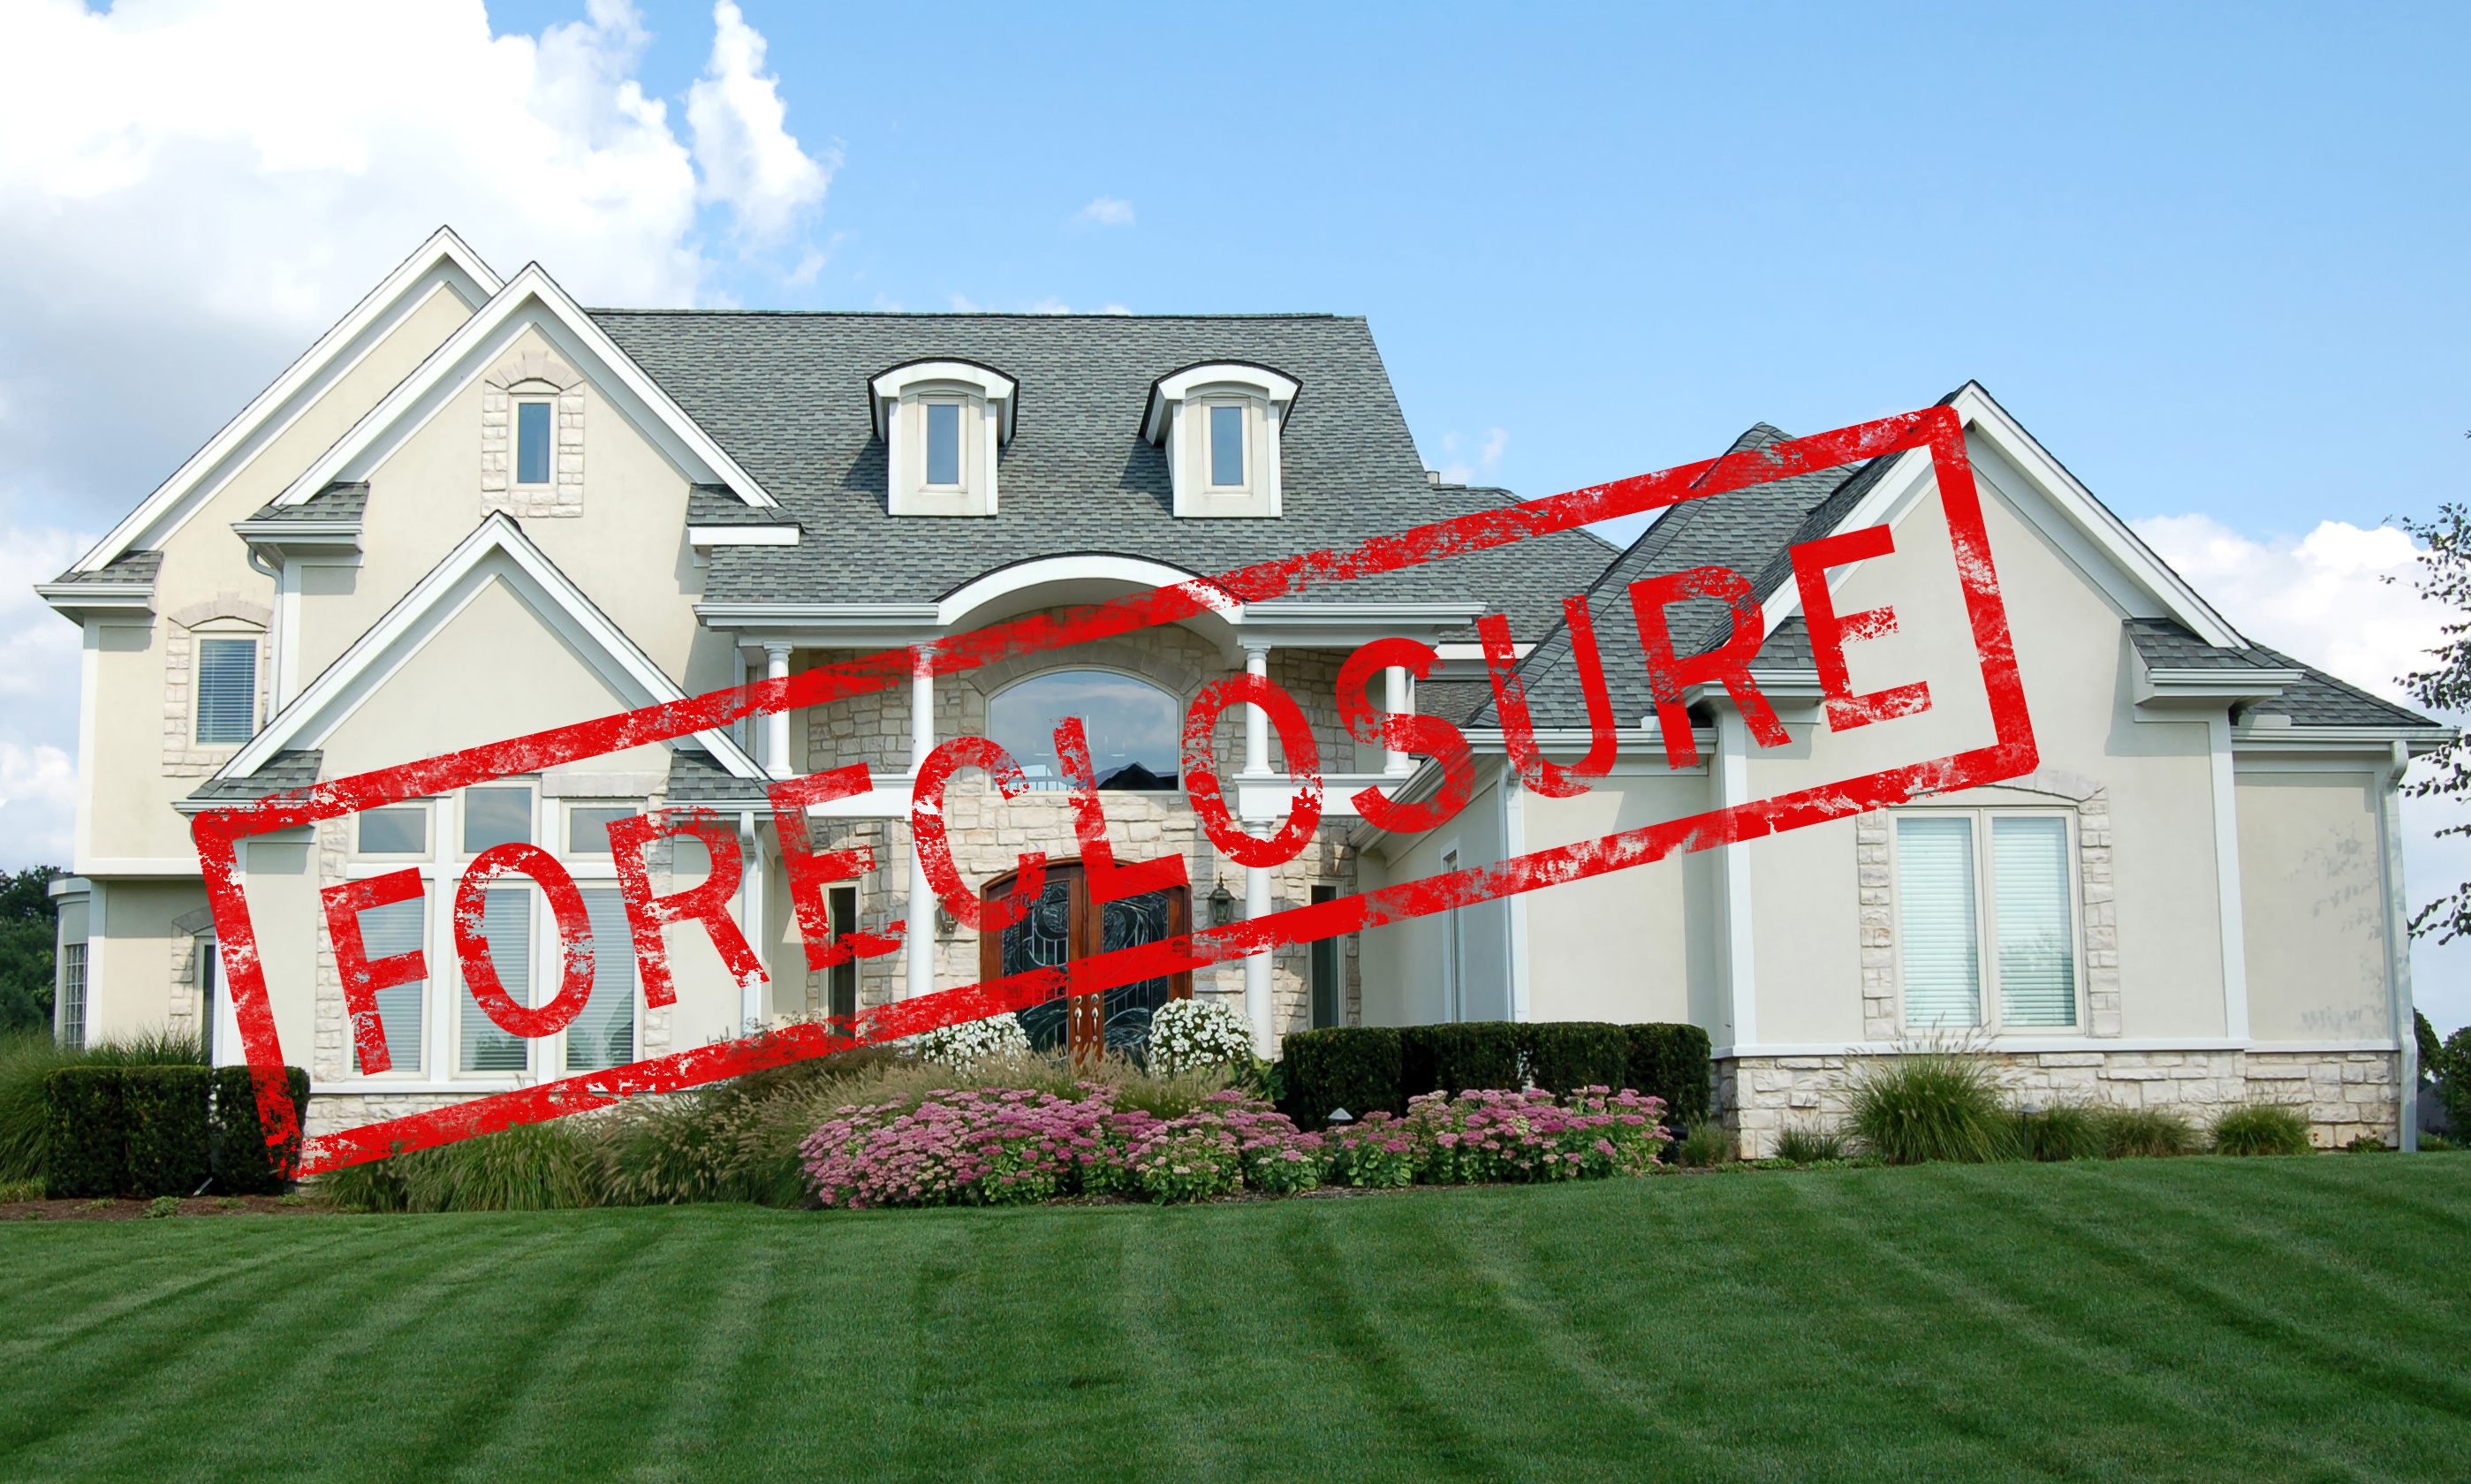 Call Giles Appraisal Group, Inc. to discuss appraisals regarding Bay foreclosures